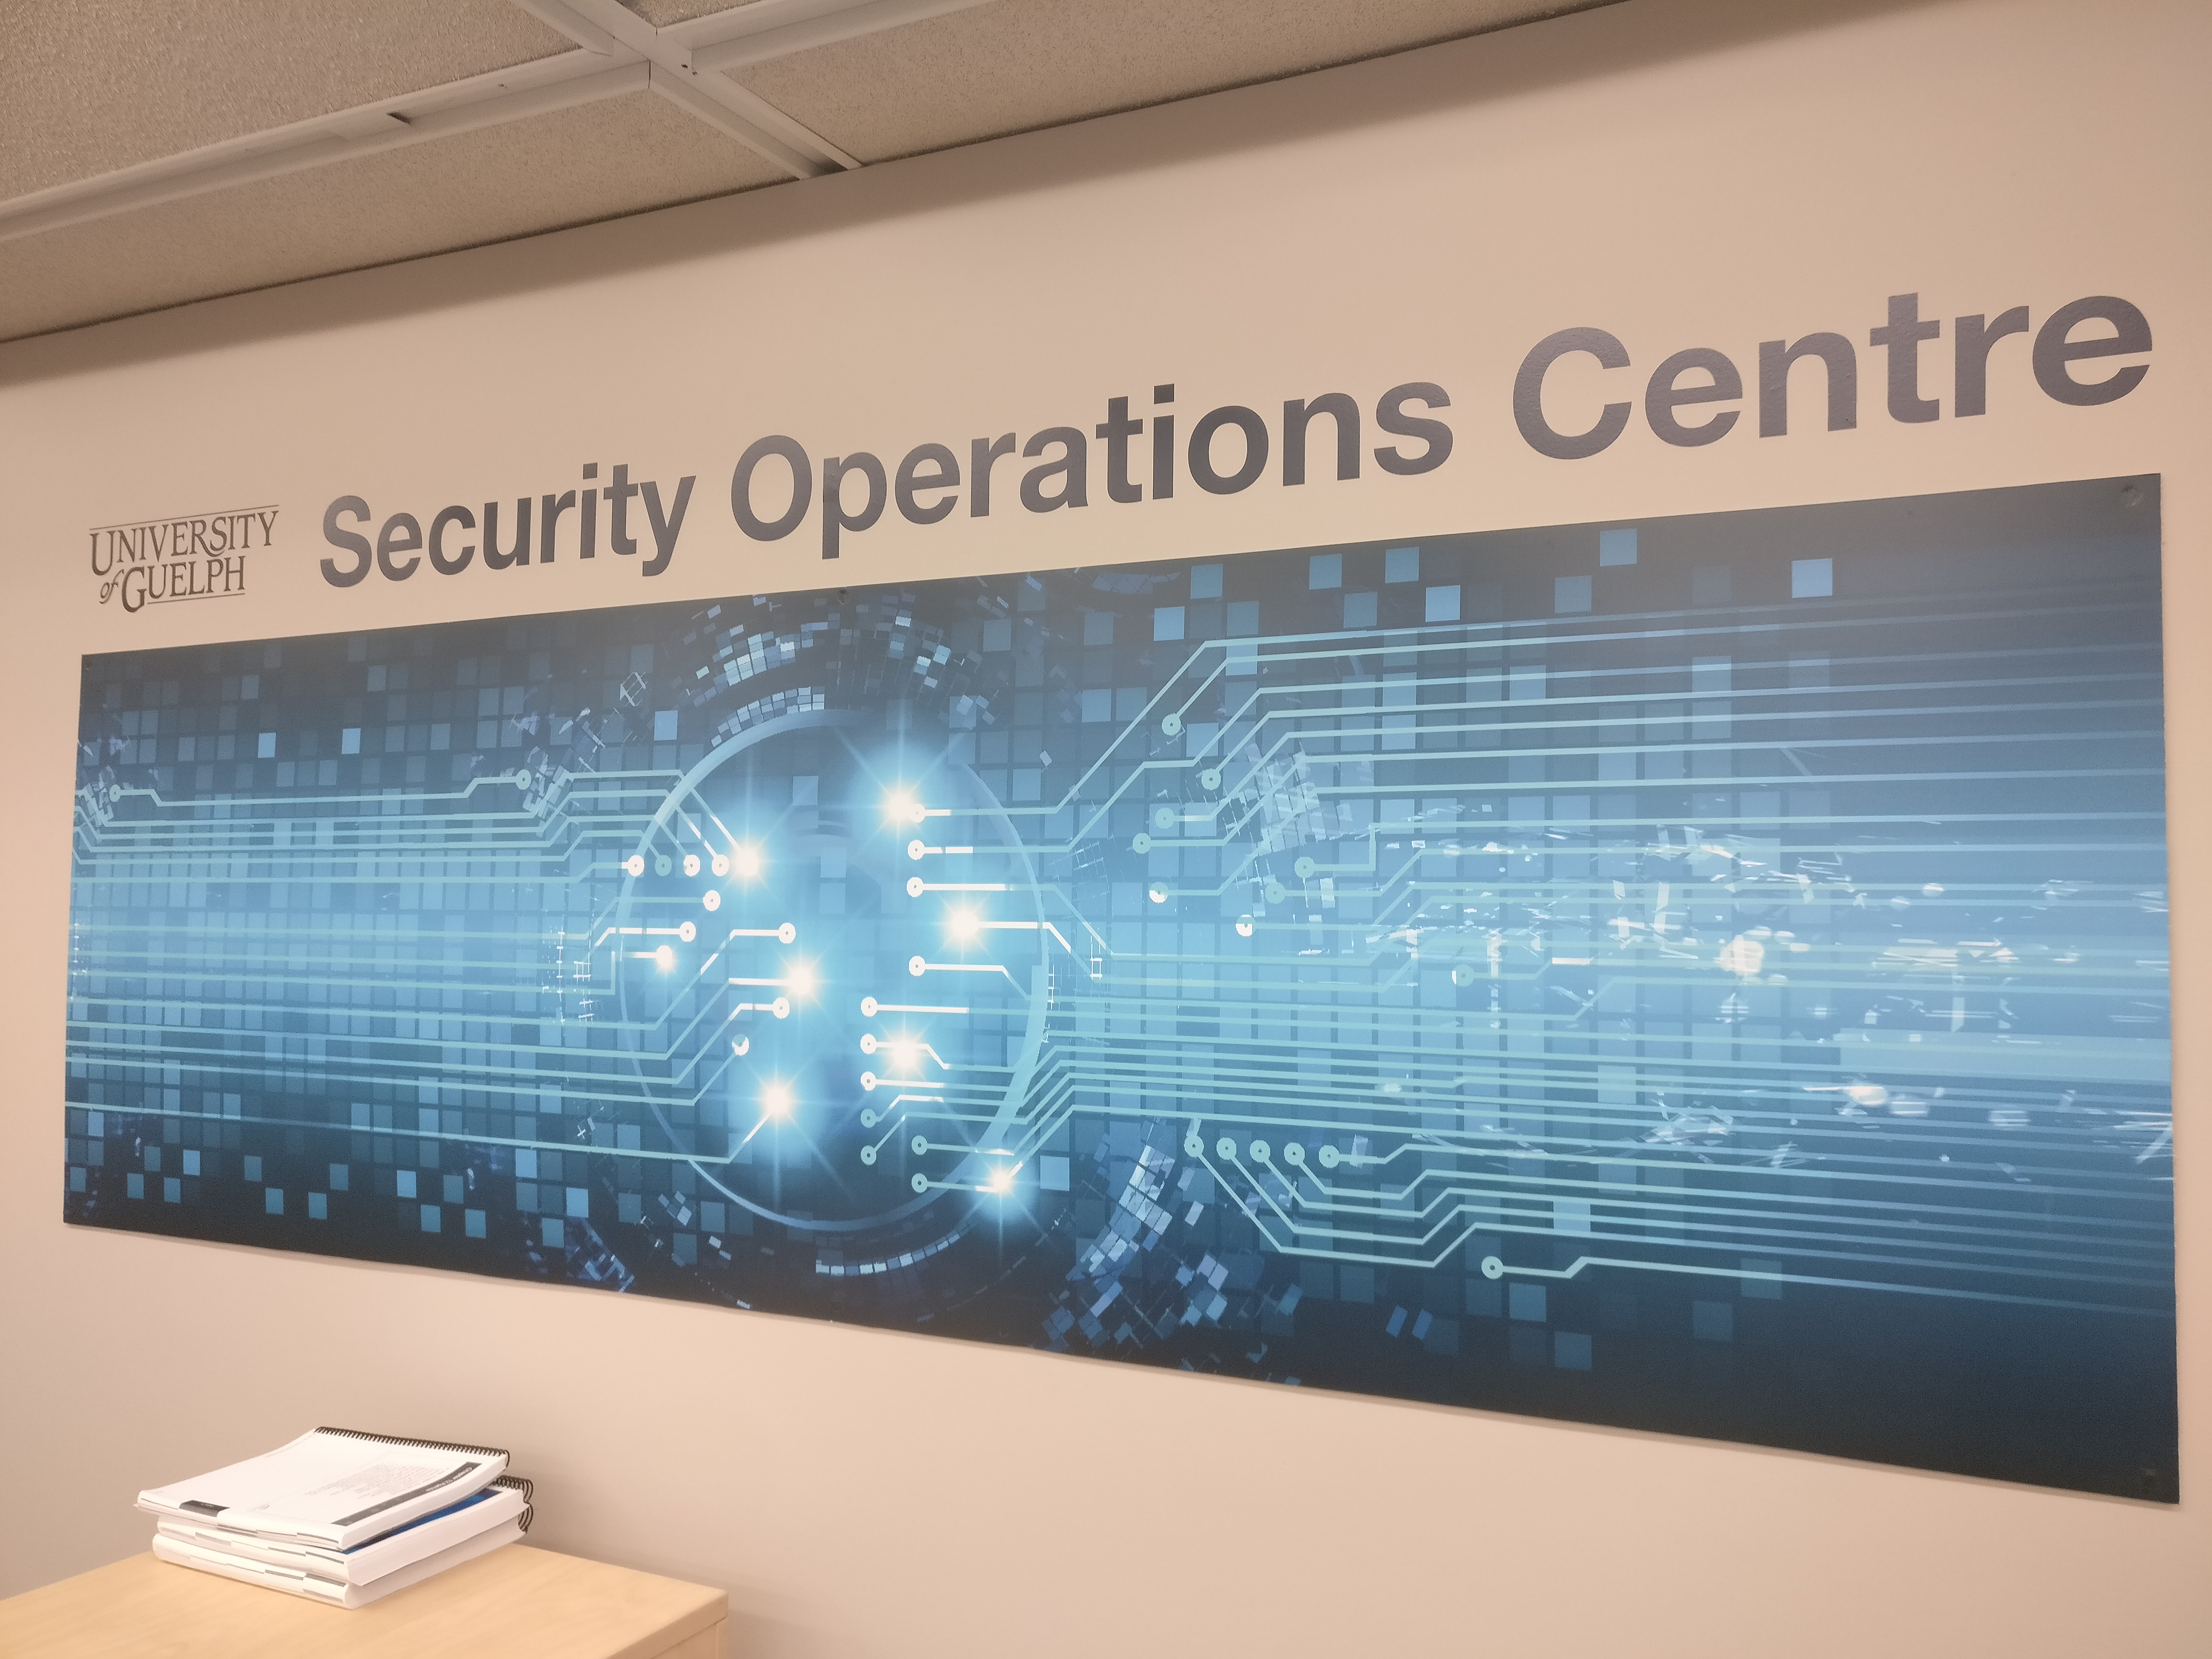 Security Operations Centre Wall Art.